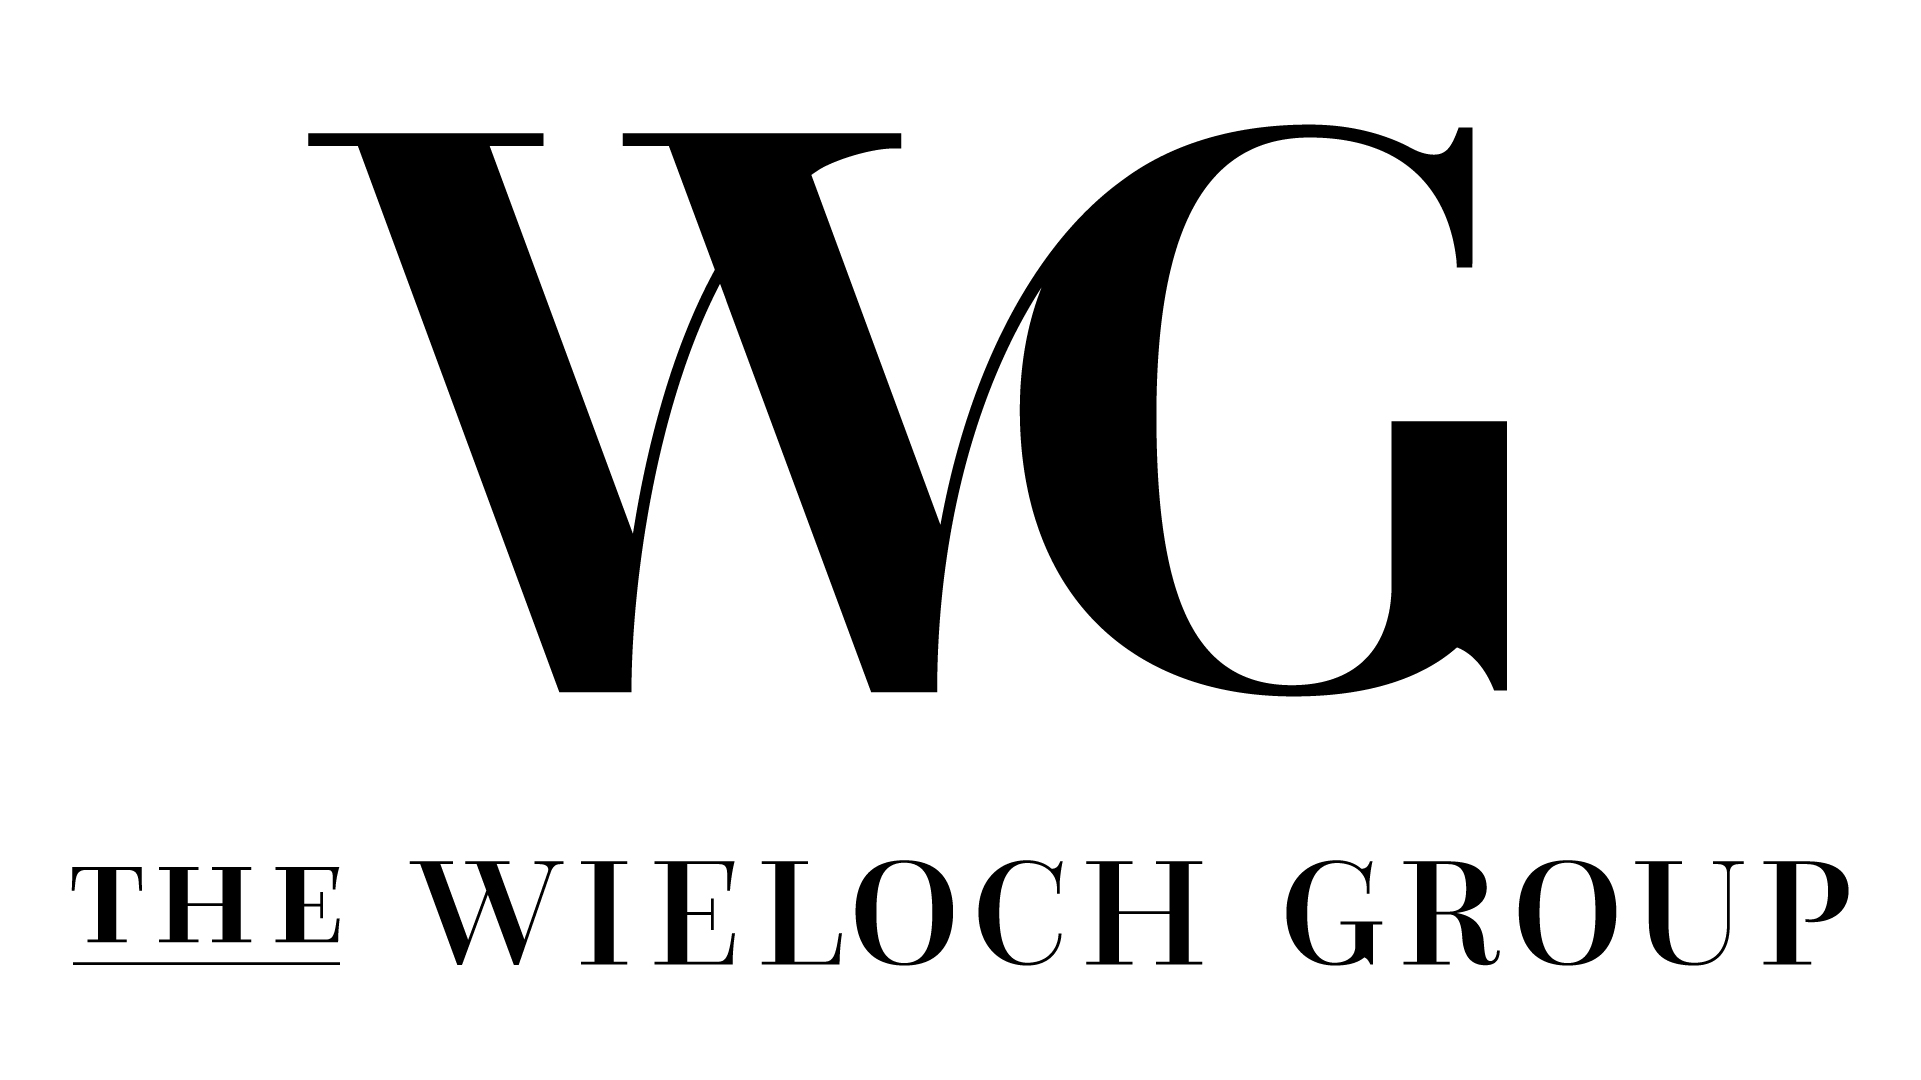 The Wieloch Group